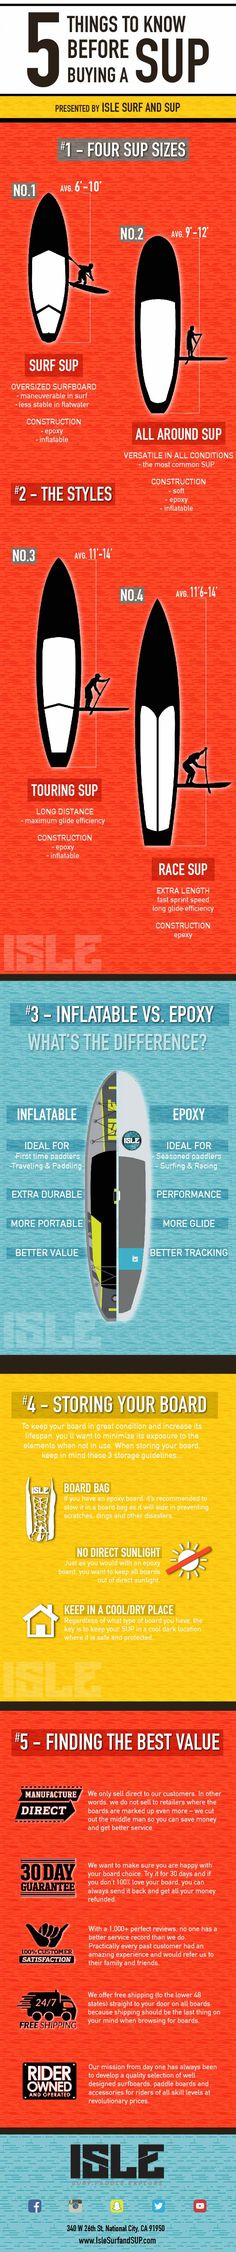 Alleviate your worries - shopping for a SUP should be simple and fun.   We've answered the top 5 questions people typically have when shopping for a stand up paddle board.